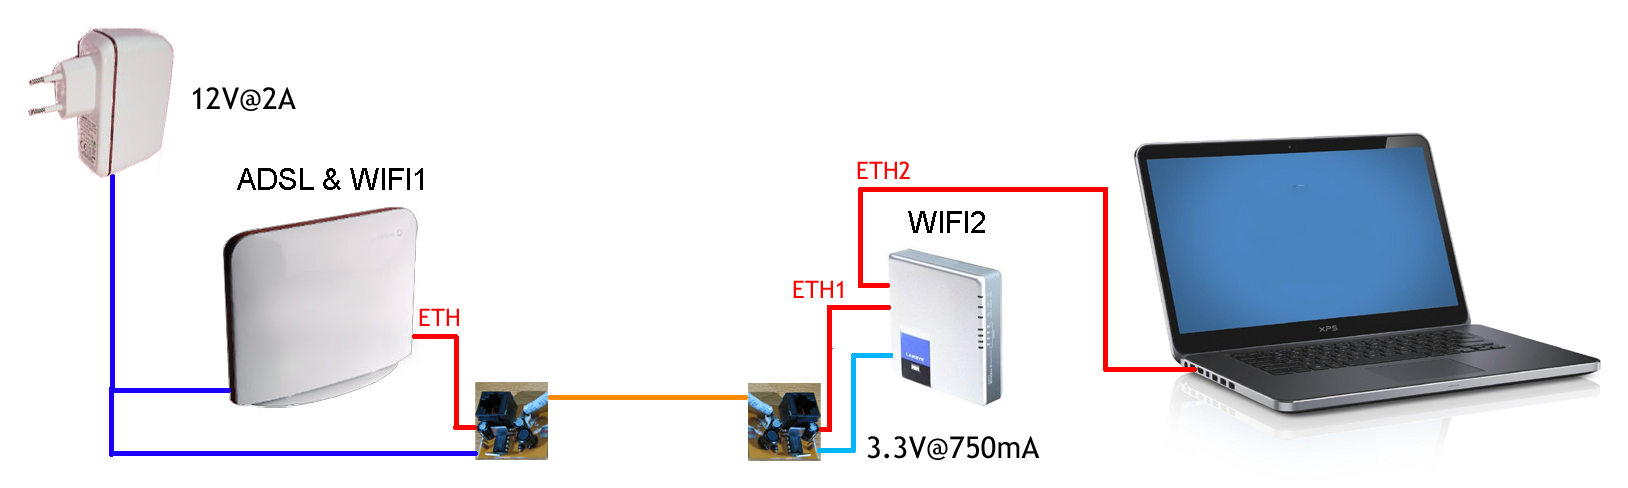 DIY Power over ethernet (PoE) | CheMaRy Web Page